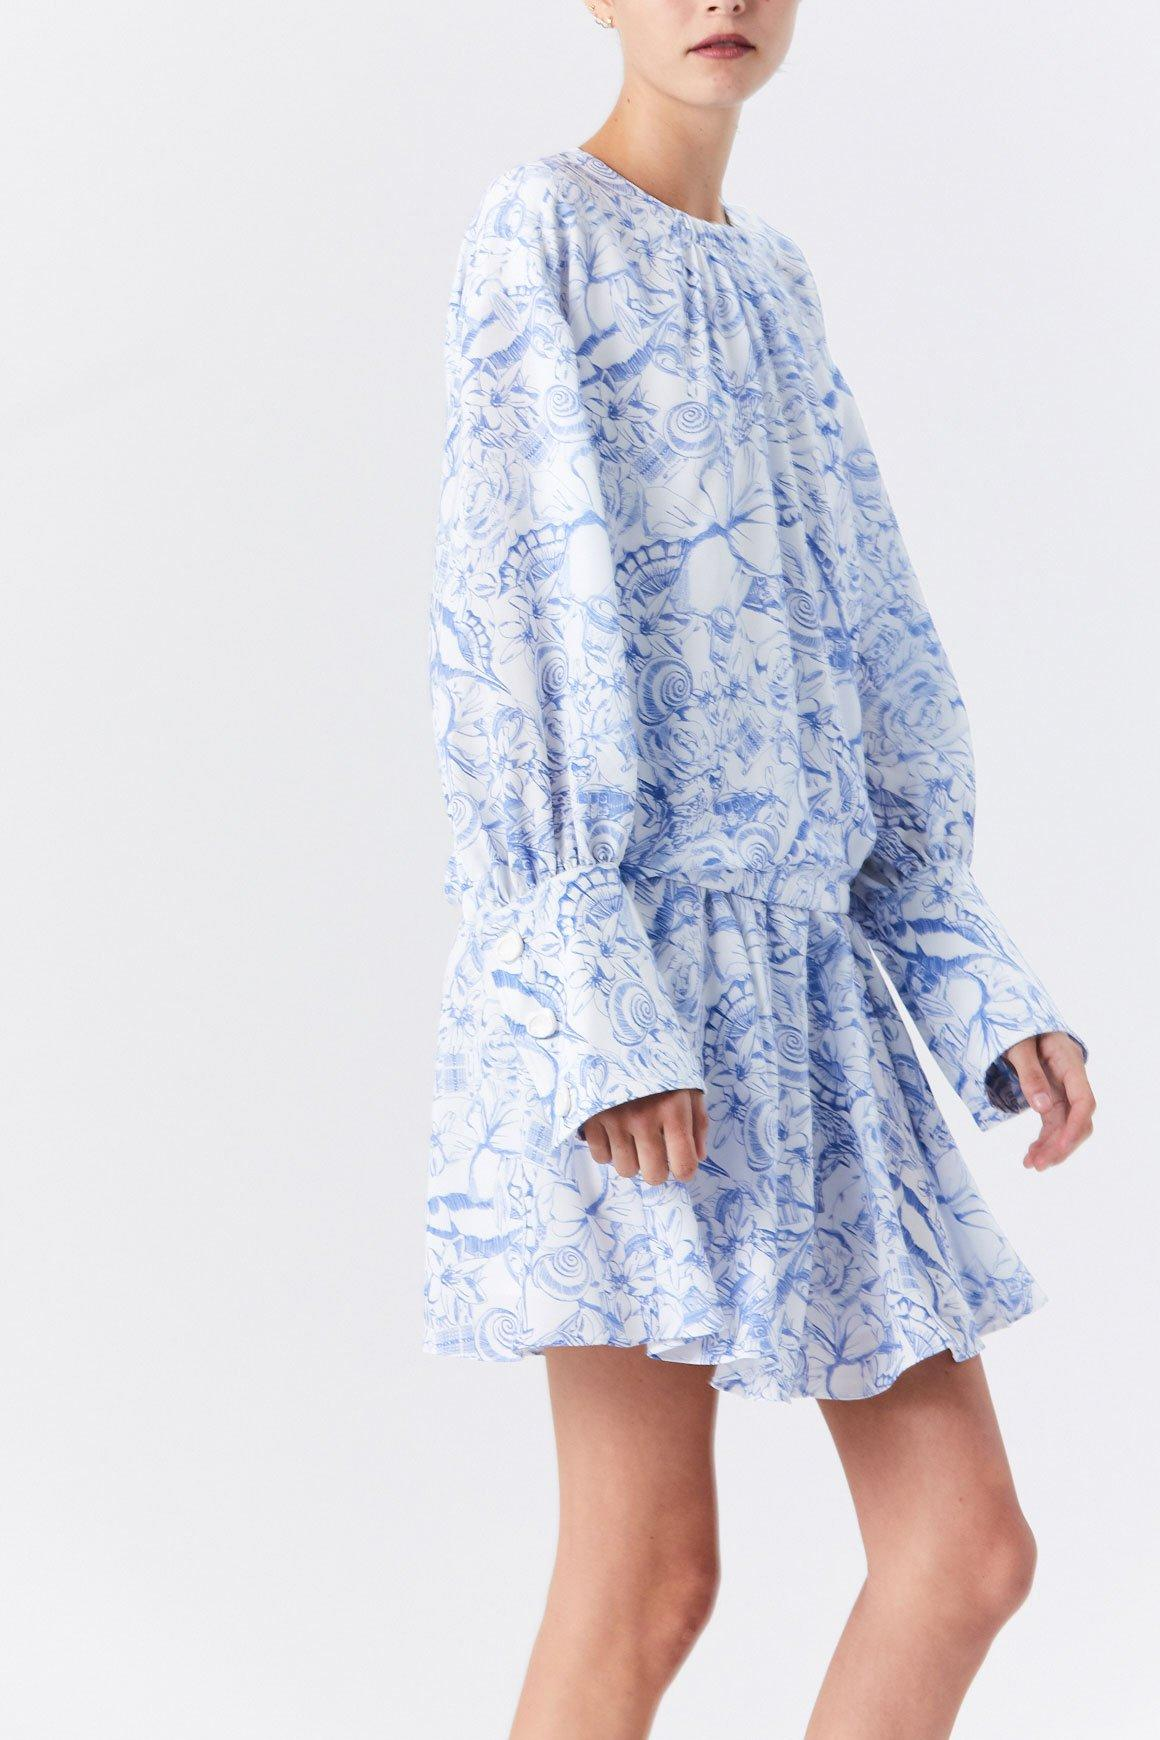 0d7040ee30 Lyst - Tibi Isa Toile Short Shirt Dress in Blue